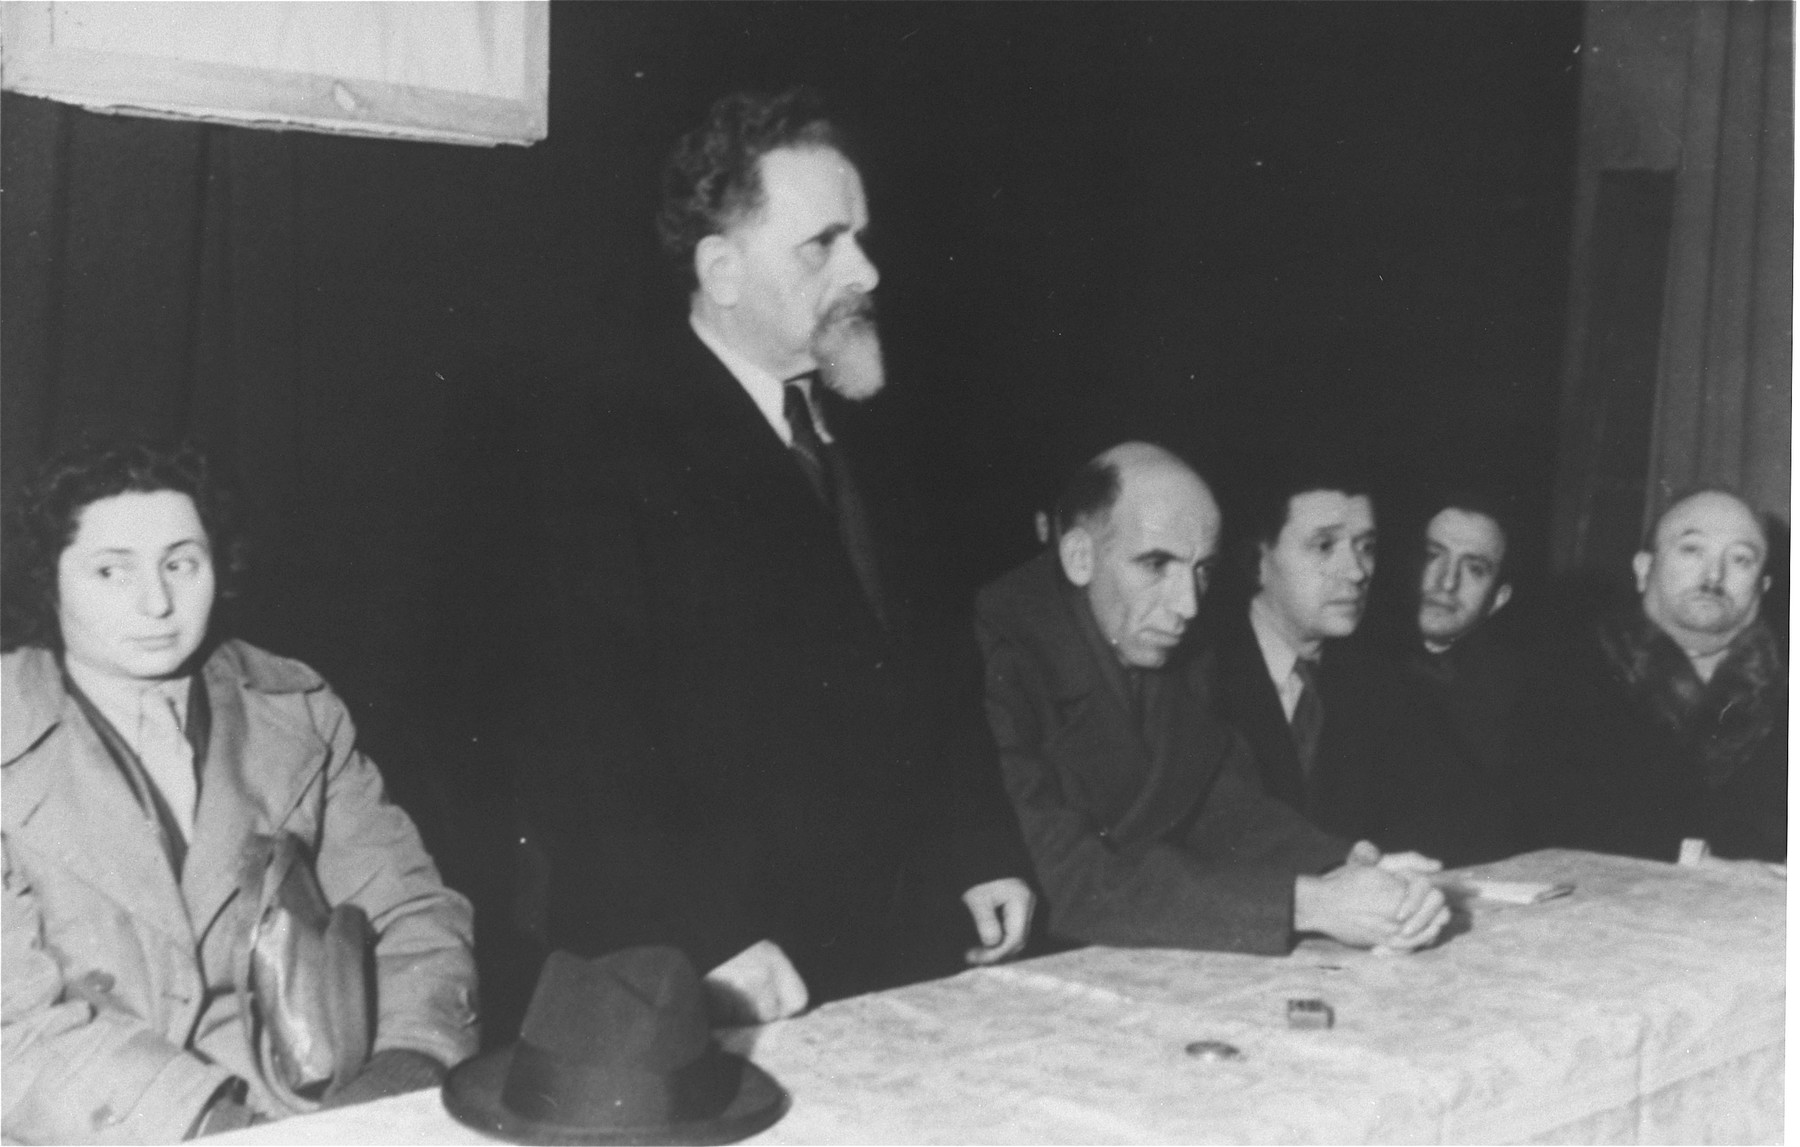 Yitzhak Gruenbaum delivers a speech at a Zionist meeting during his visit to the Zeilsheim displaced persons camp.